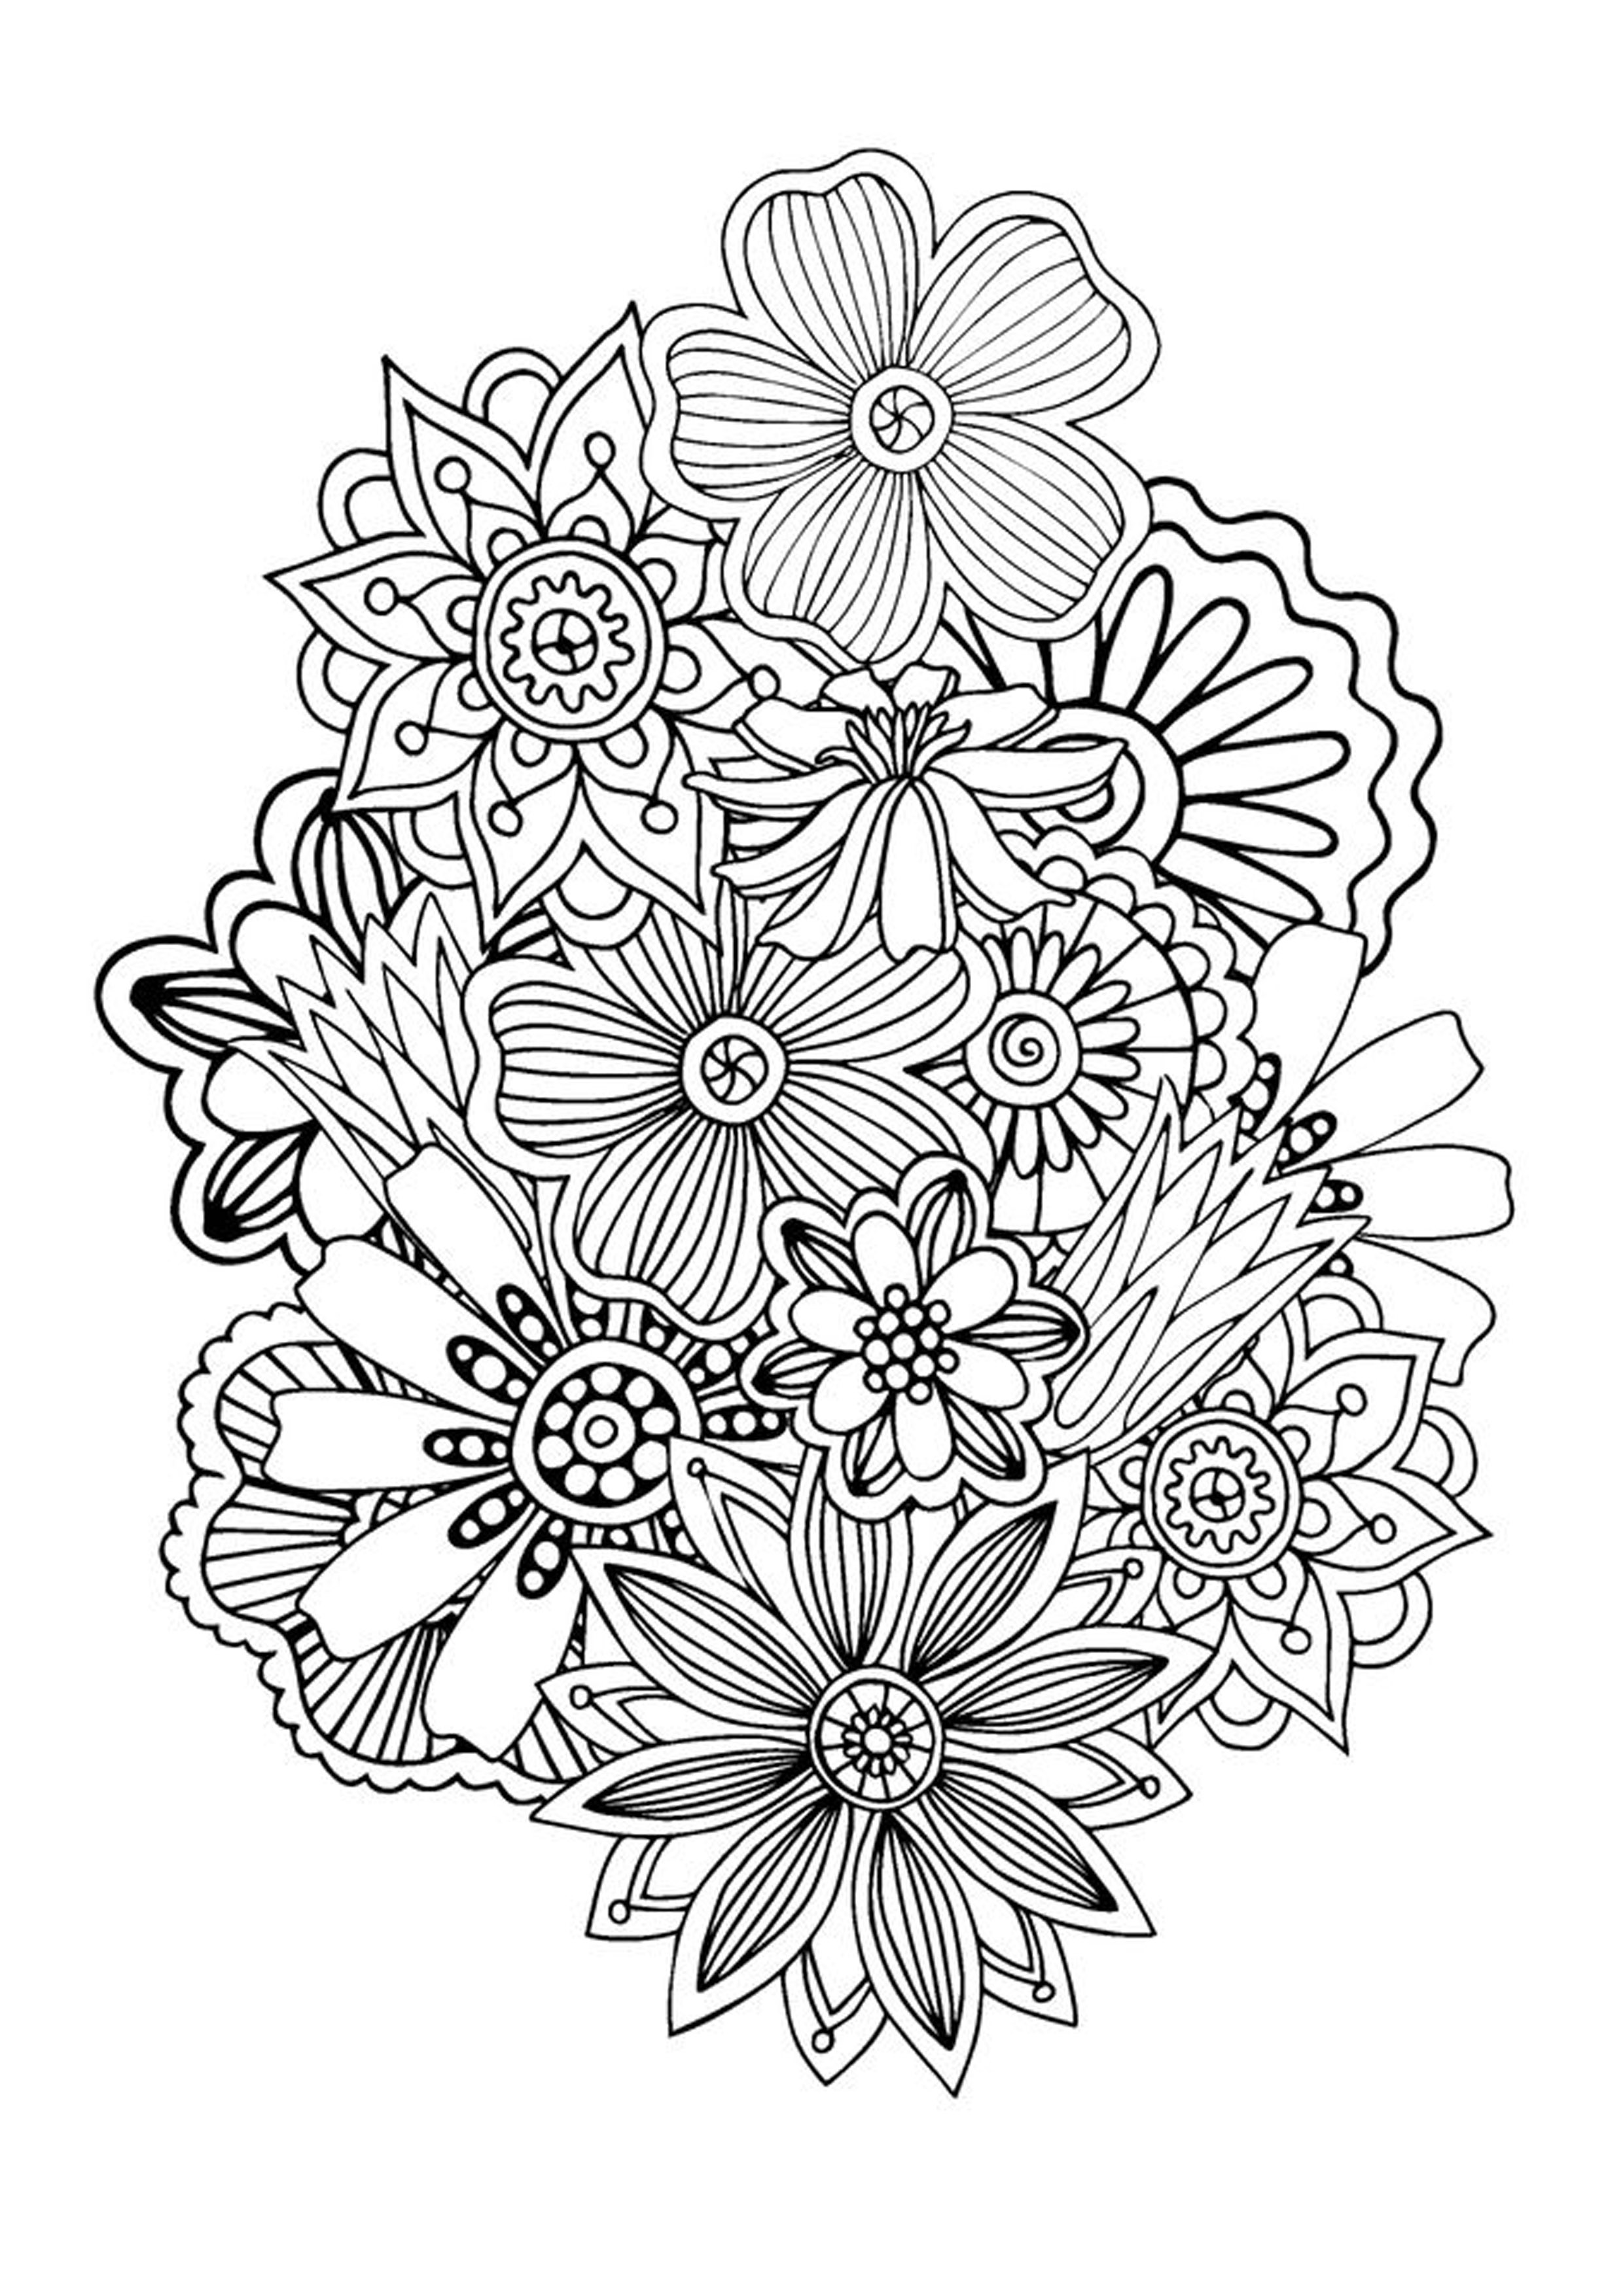 free zen coloring pages zen antistress abstract pattern inspired anti stress coloring pages zen free